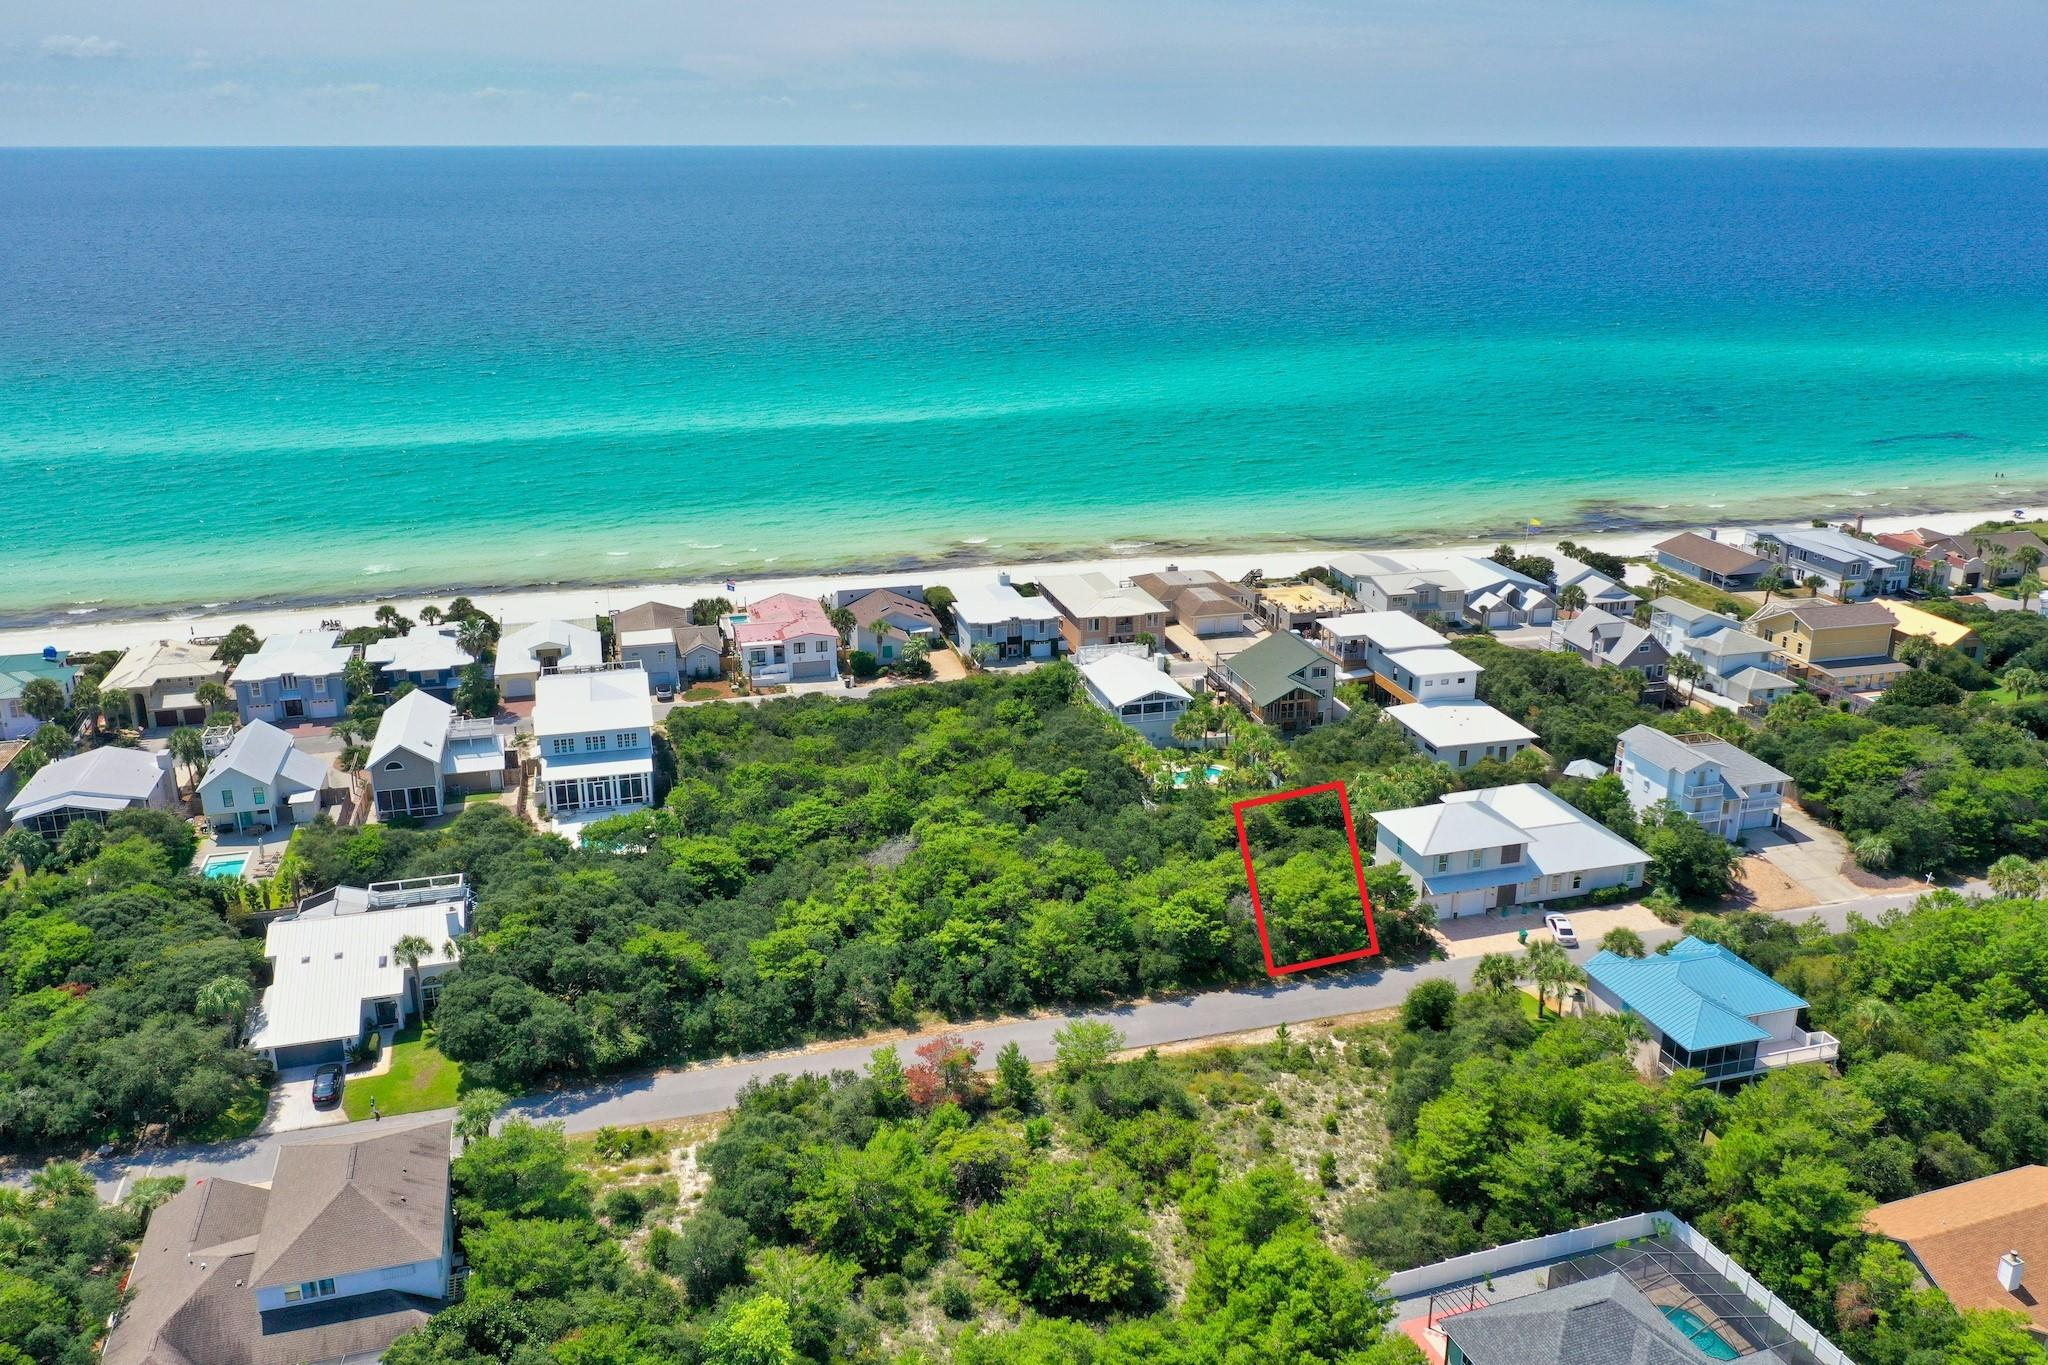 Incredible lot in a private, non-rental, gated community of 30A. Sand Cliffs on the Gulf is an exclusive community bordering Alys Beach and the beautiful Gulf of Mexico. With a low HOA fee and no build out time, this is the perfect opportunity to build your dream beach home! Gulf front lots are restricted from building higher than 18.5 ft, however lot 6 can build up to 30 ft high which means you can still enjoy Gulf views from a higher floor! This large lot sits high and dry on the bluff, the perfect place to build your 2.5 story dream beach home with Gulf views & lush surroundings! Sand Cliffs is a Gulf front community with 2 deeded beach accesses offering 1300+ ft of pristine beach along the beautiful emerald green & crystal blue waters of the Gulf of Mexico. Within a 1/2 mile to beach! There is a walkway located on the same street just steps outside of your door that leads to the private beach boardwalk. Sand Cliffs on the Gulf offers a peaceful setting for private homeowners, no thru traffic nor crowded beaches. Sand Cliffs is one of the highest elevations on the Gulf of Mexico along Scenic Hwy 30A. Lot 6 sits high on the bluff with miles of panoramic views, both west and east. Being south of 30A and nearby Alys and Rosemary Beach means you are just a short walk or bike ride away from all the attractions that the desired east end of 30A has to offer, yet you can relax and enjoy the privacy of being tucked away in a serene, non-rental, beachfront community. You are also very close to The Hub 30A which offers world class live music, family friendly movie night, sports on the big screen outdoors and great dining, galleries and shopping. Sand Cliffs on the Gulf is located amid Florida's finest beach communities, restaurants and recreational activities, so do not miss out on this incredible opportunity to have quick access to it all! Build your private oasis today.